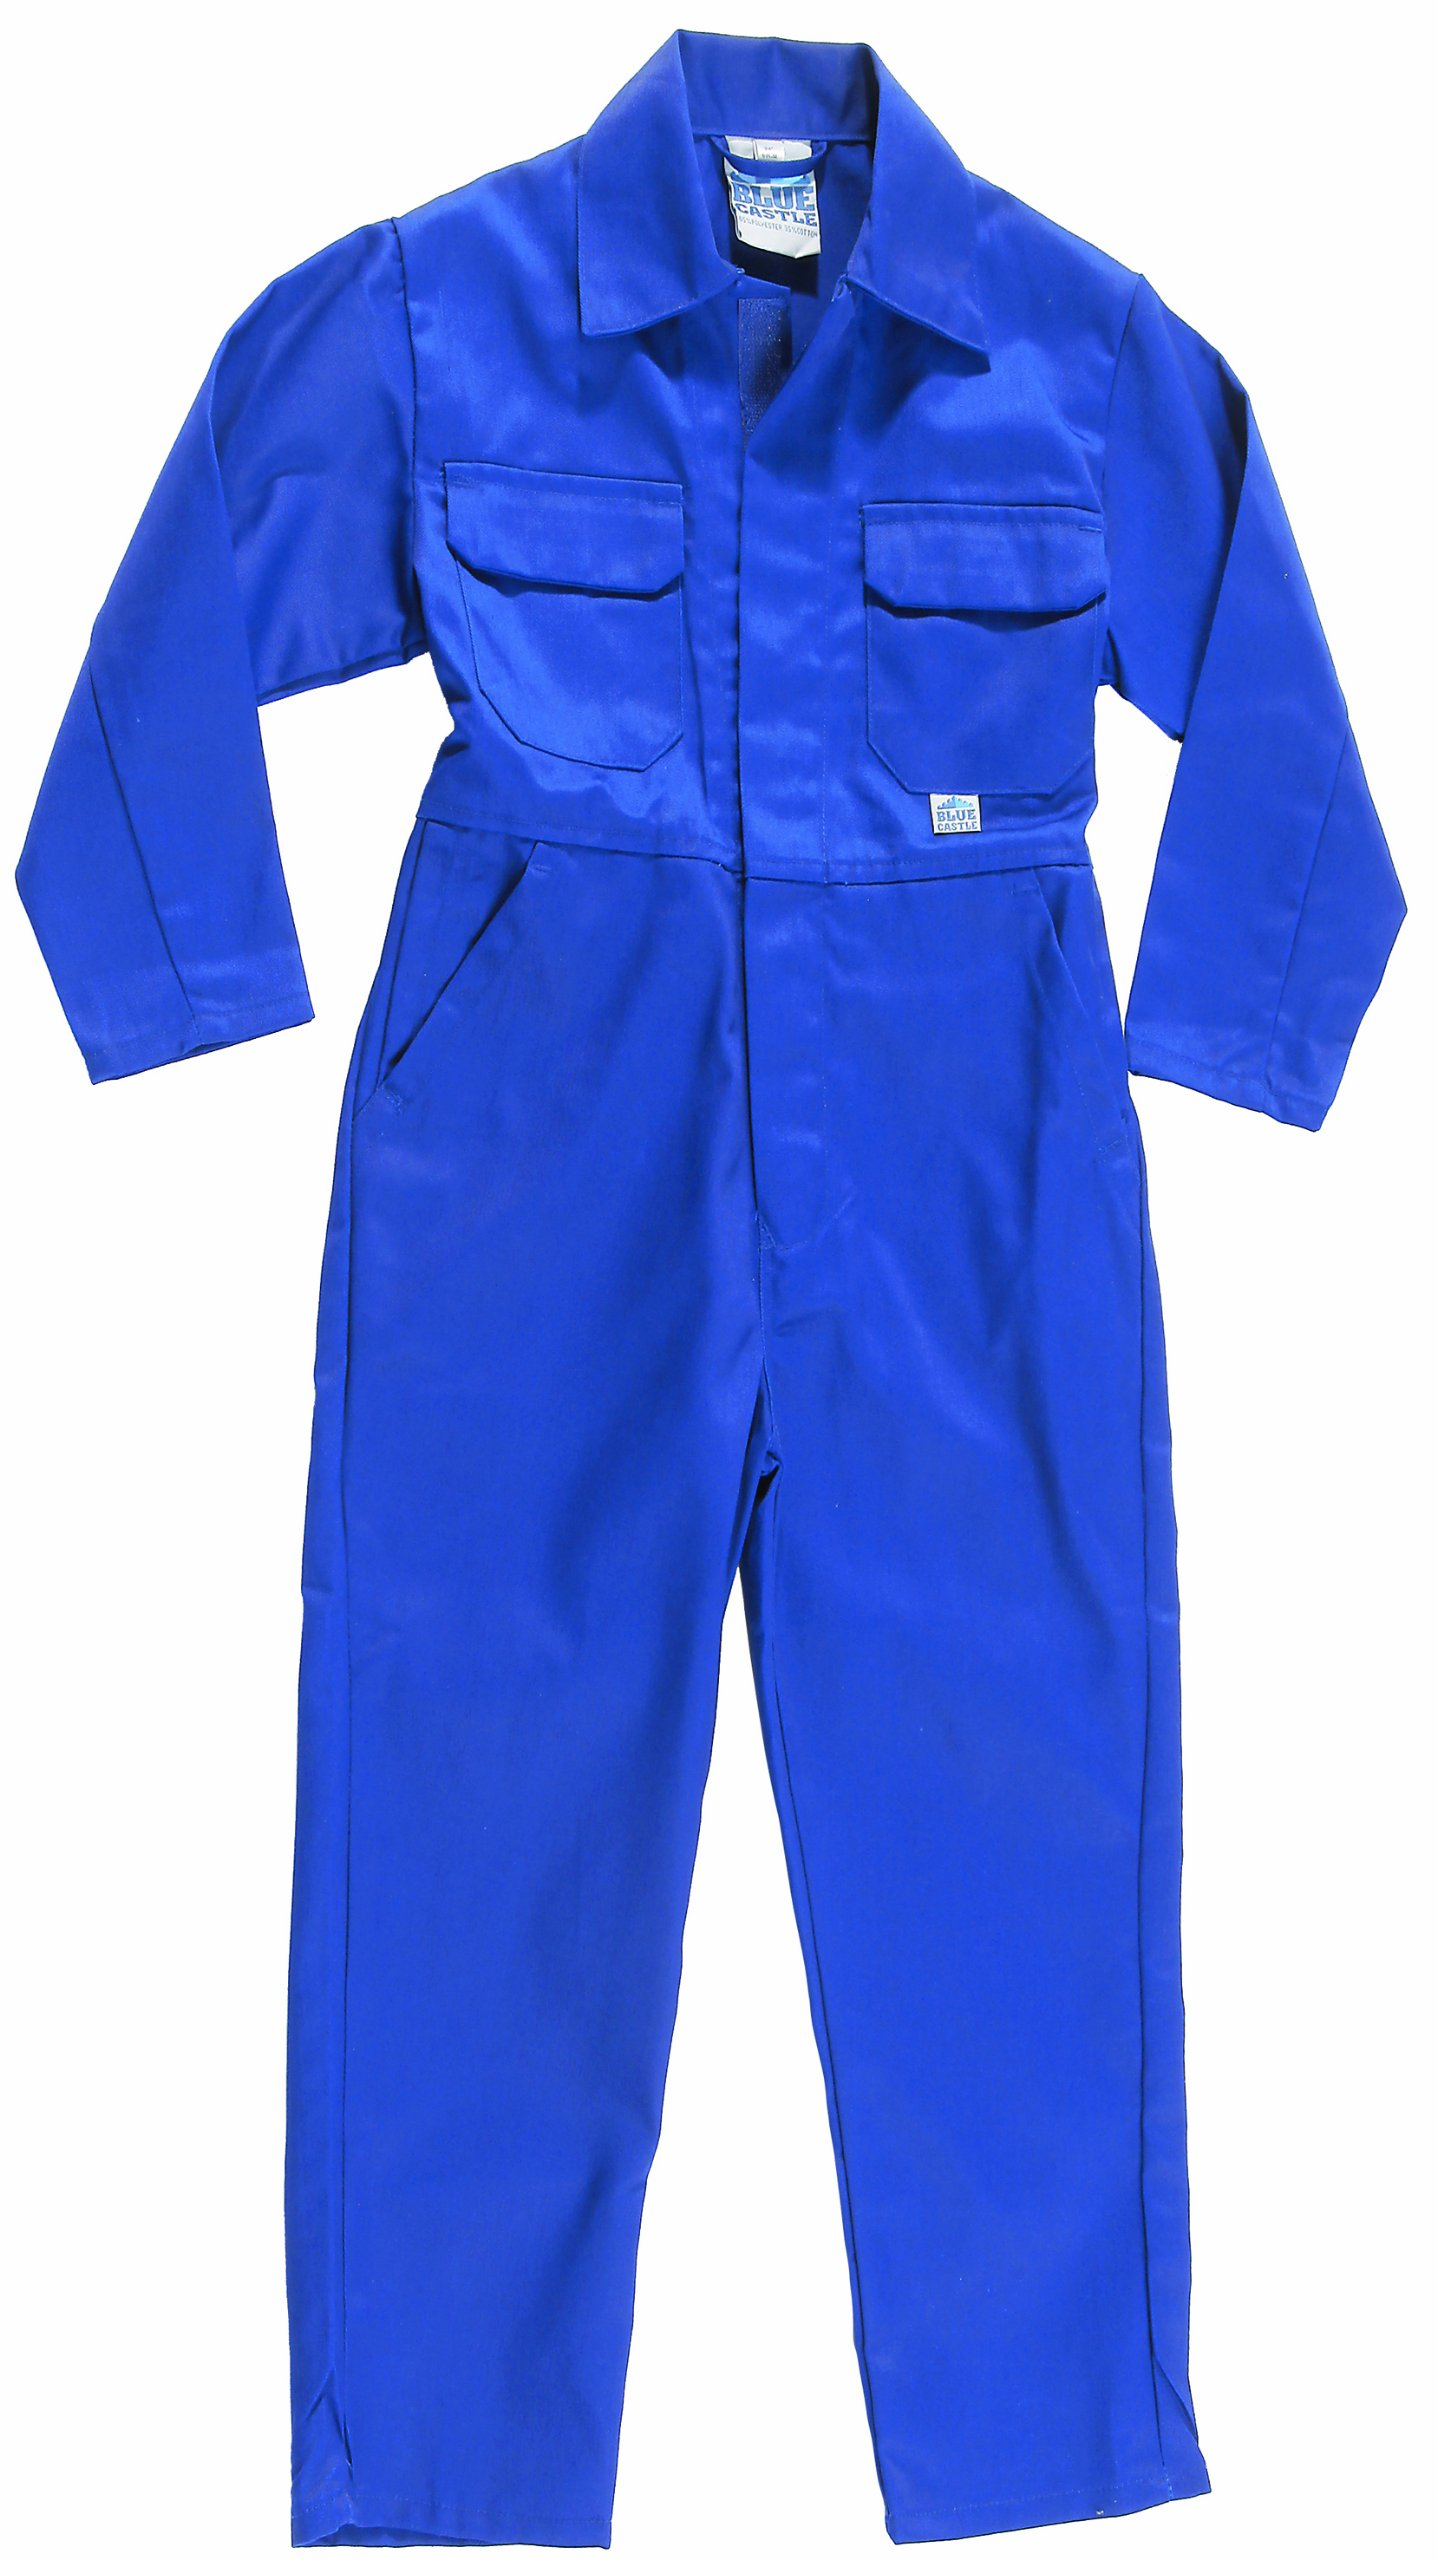 "Castle Clothing Children's Coveralls - Royal Blue (Chest Size 20"")"